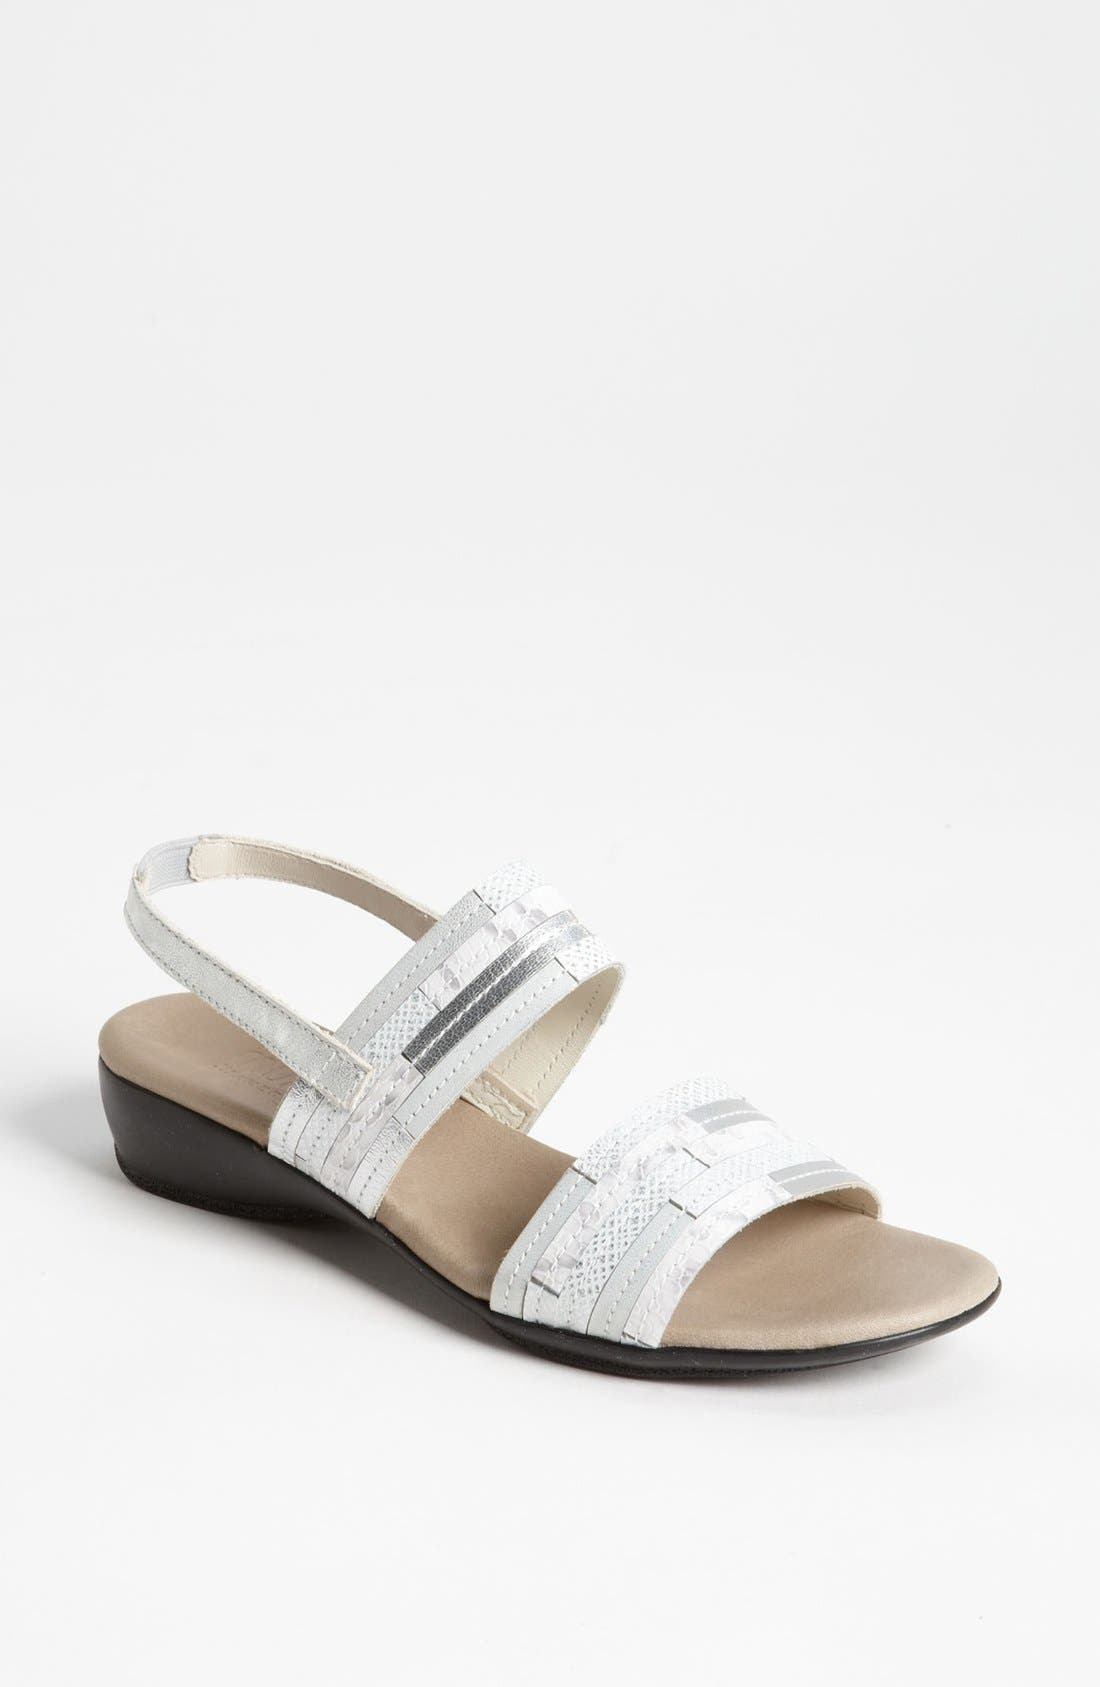 Alternate Image 1 Selected - Munro 'Tangier' Sandal